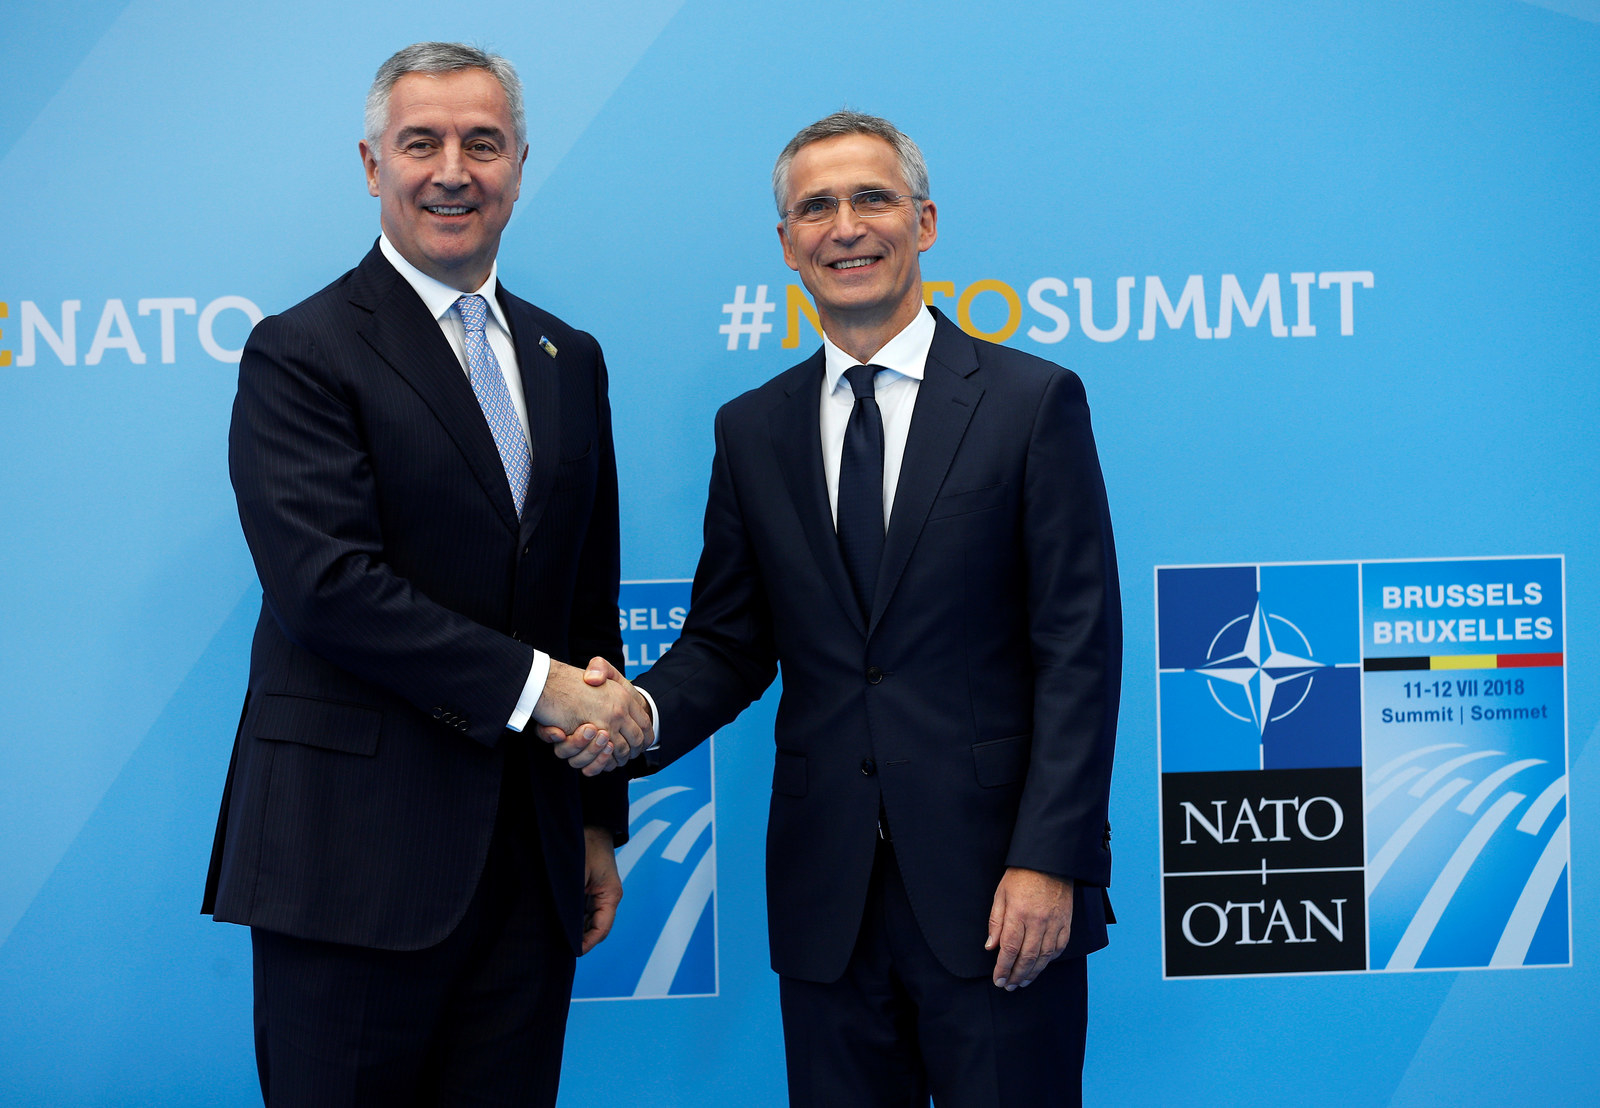 It's quite the treatment for a country that opted to side with NATO and the EU over Russia, which reportedly supported a  foiled coup plot  against Montenegro President Milo Djukanovic in 2016.